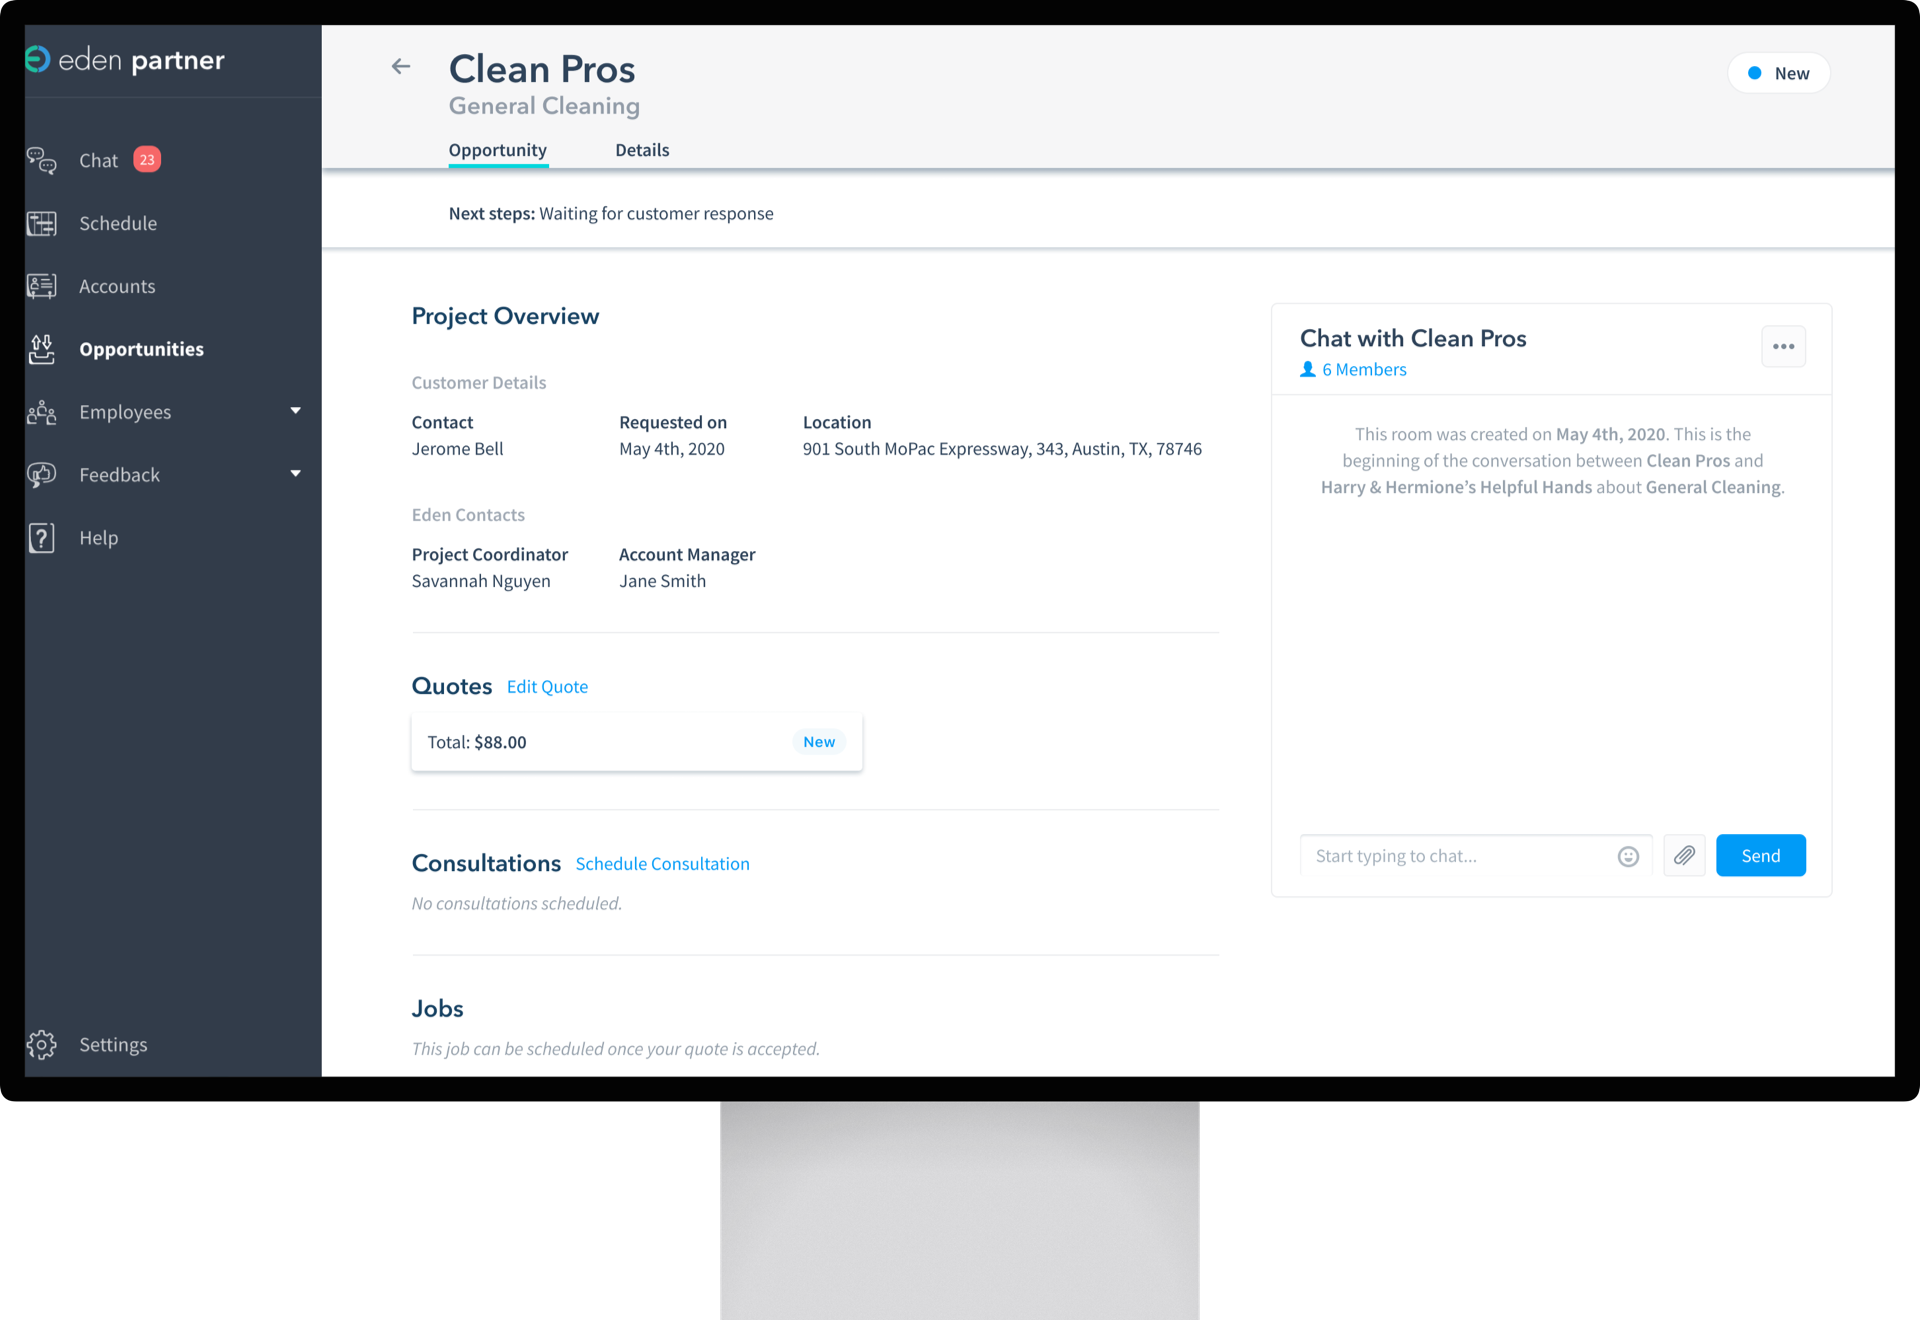 Project request details with Clean Pros partner